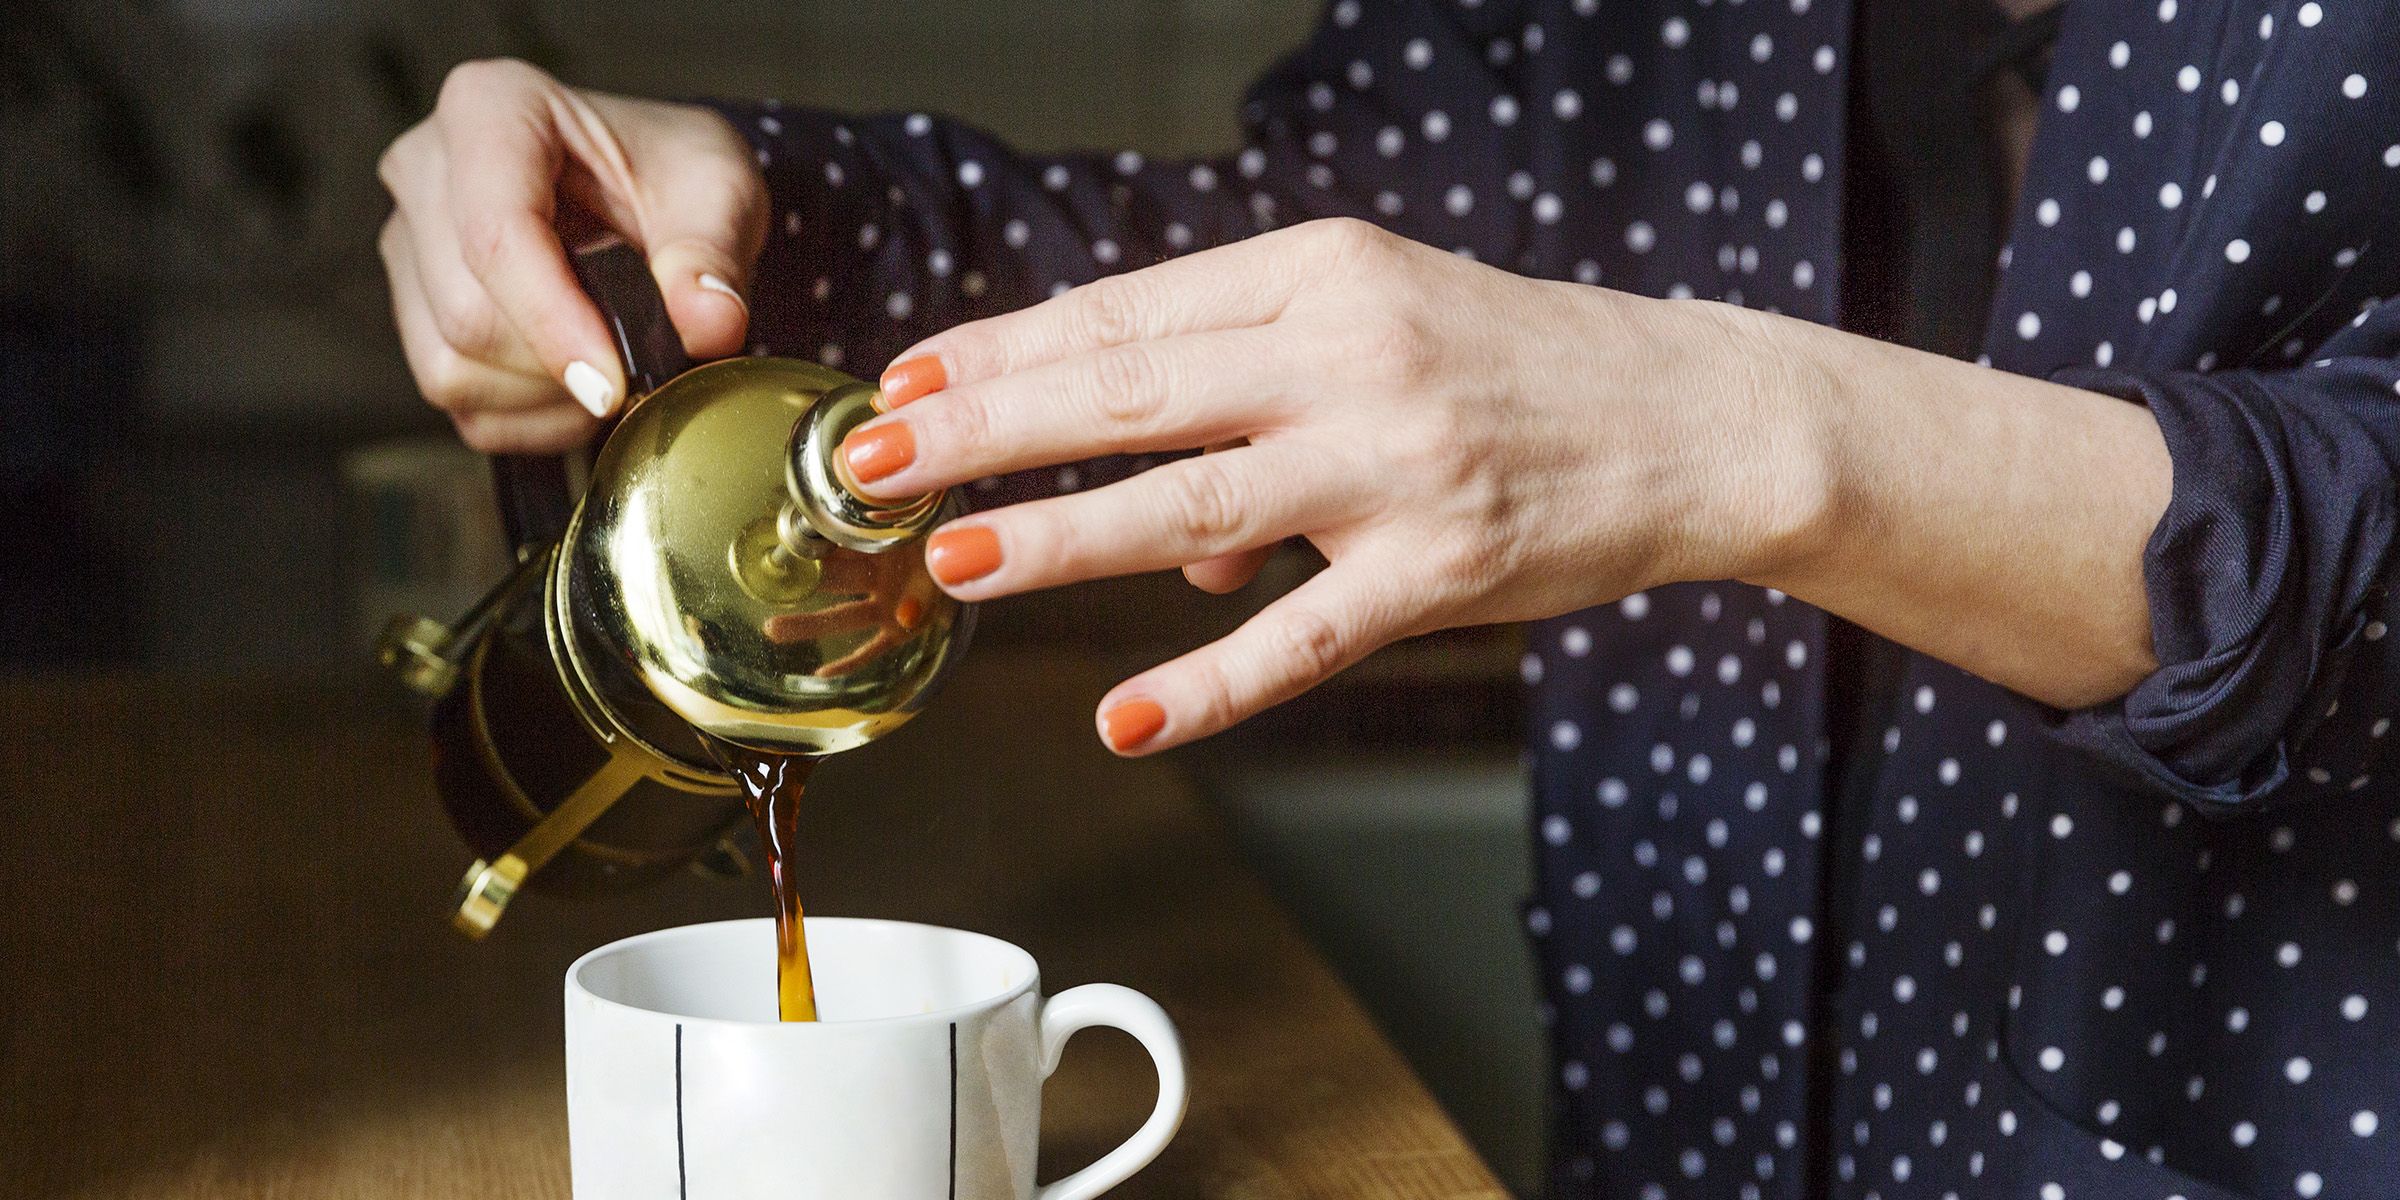 10 easy-to-use gadgets baristas use to brew perfect coffee at home